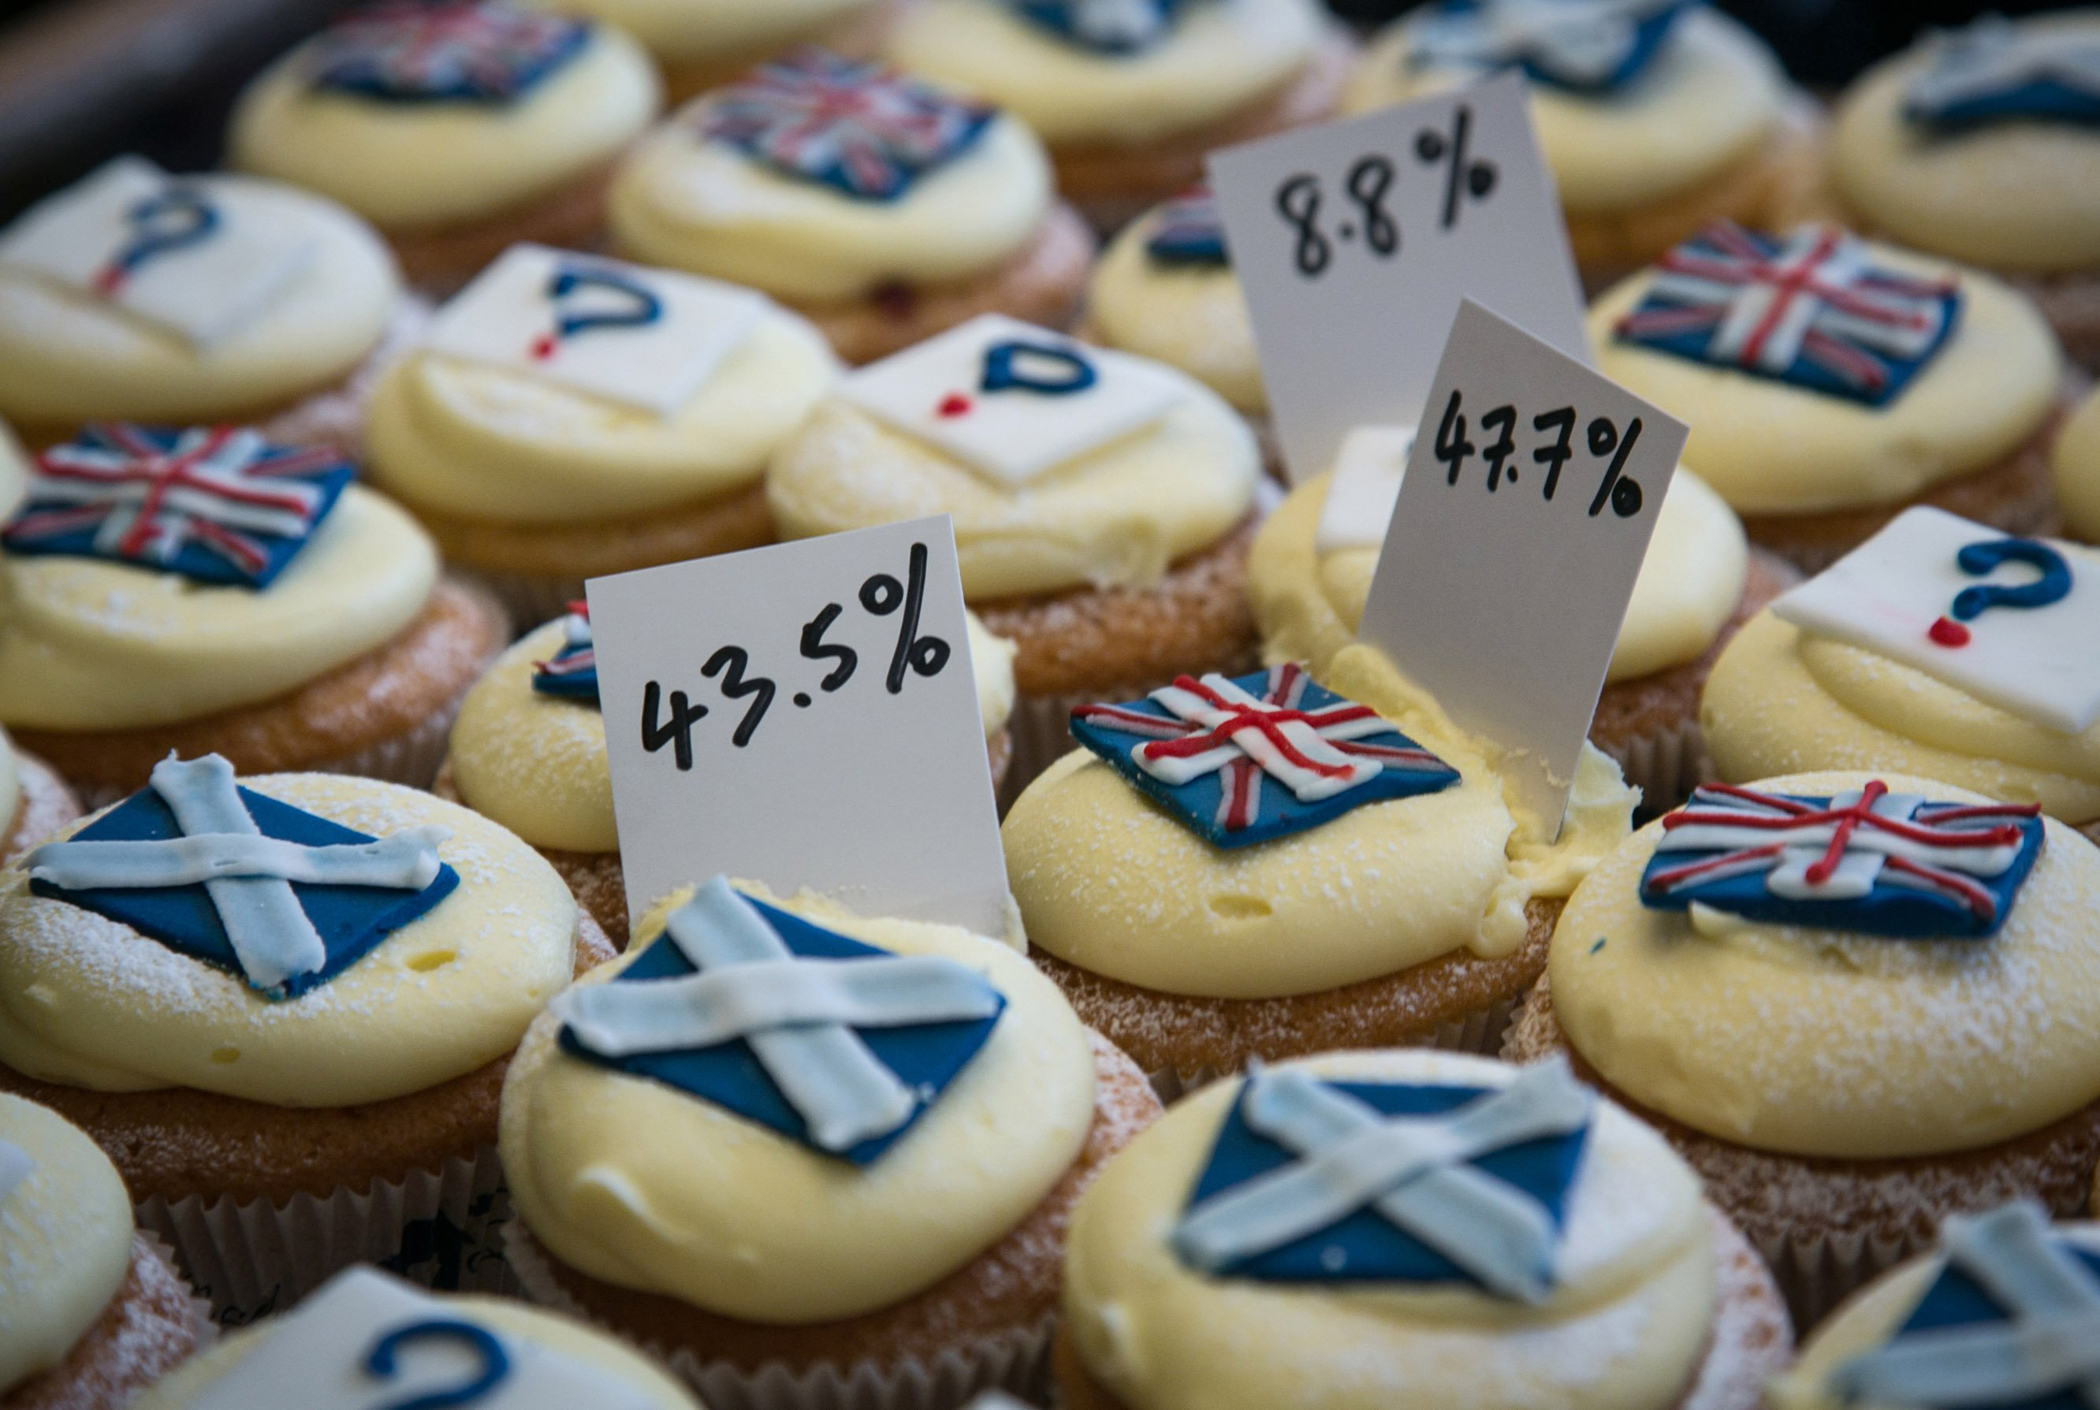 Cuckoo's Bakery reveal the result of the cupcakes referendum that the bakery has been holding since March 7 by selling Yes, No and undecided cupcakes at Cuckoo's Bakery in Dundas Street, on Sept. 17, 2014 in Edinburgh, Scotland.